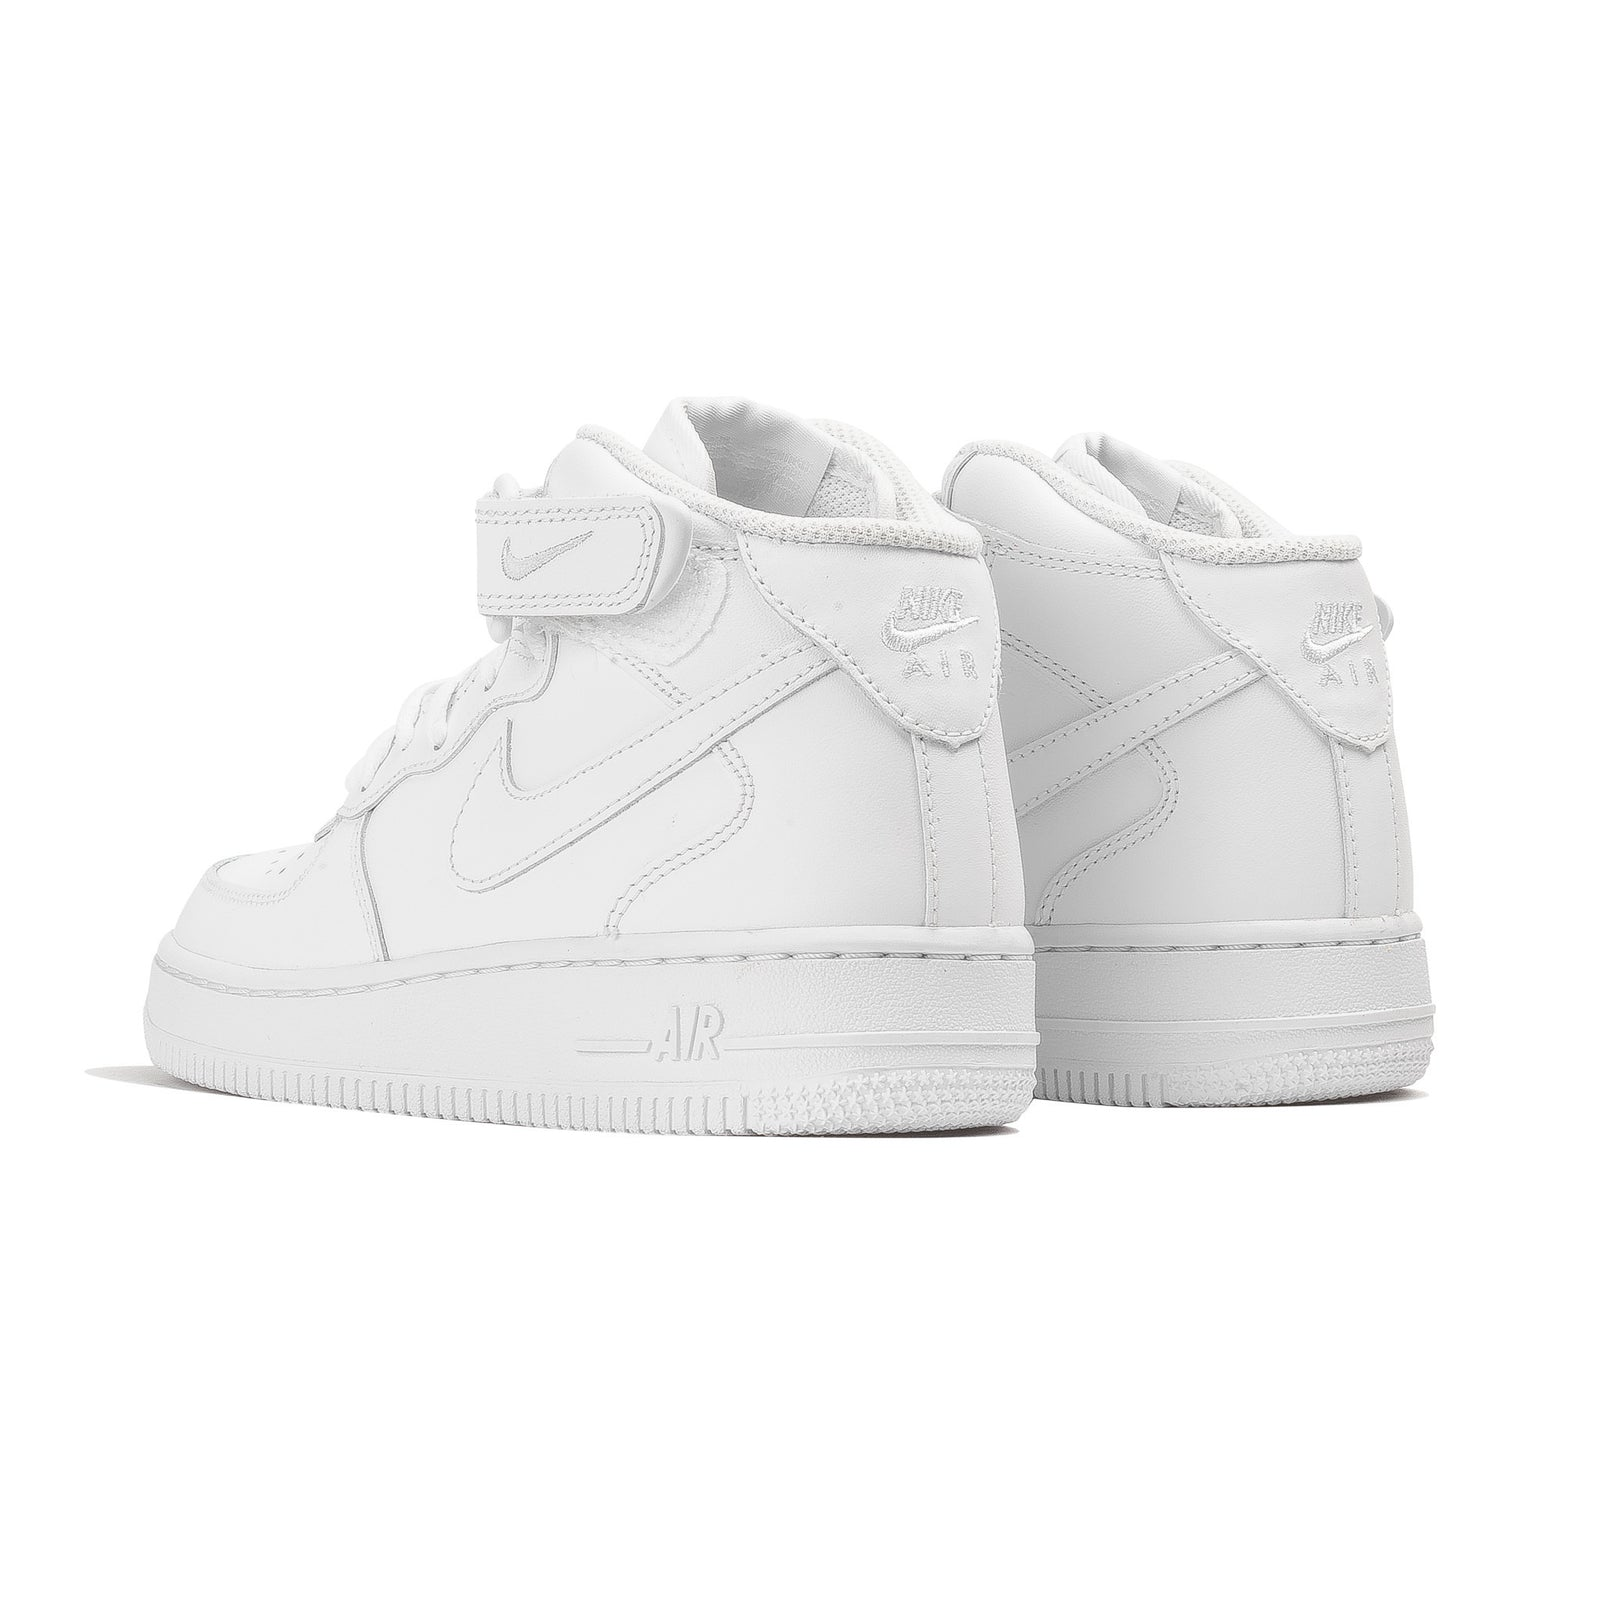 quality design 7d51c 45f80 ... White Air Force 1 Mid 07 315123 111